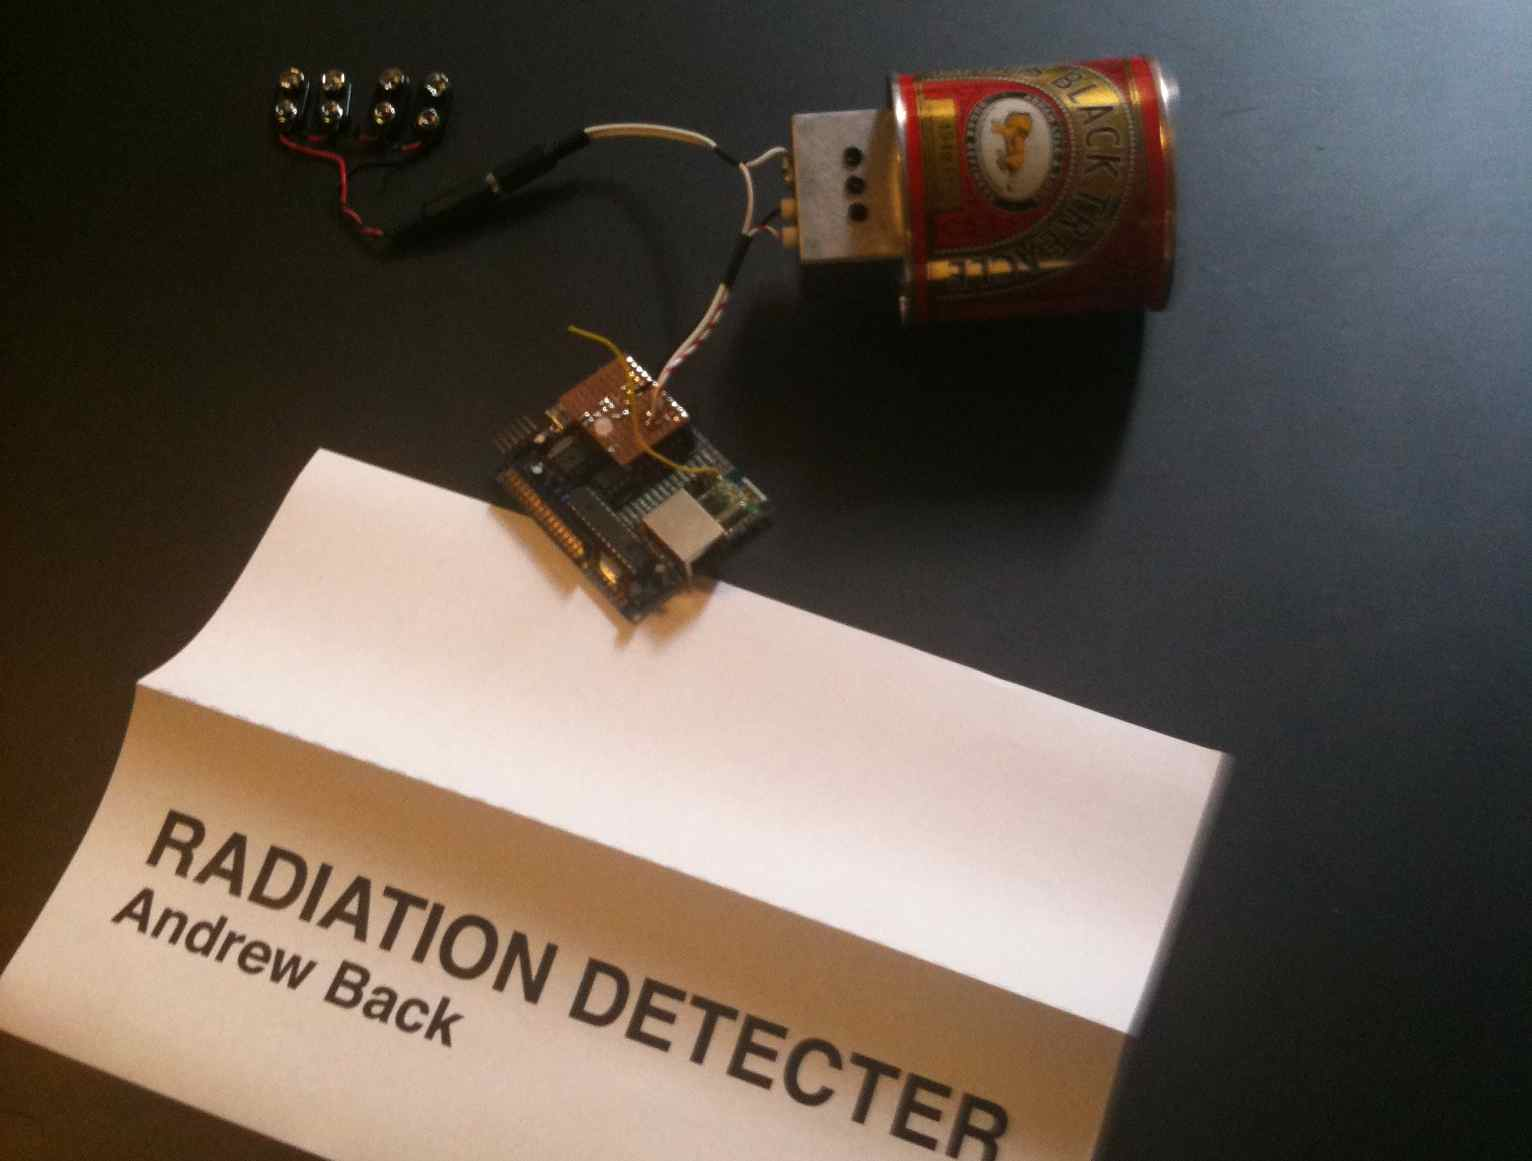 Andrew Back's radiation detector